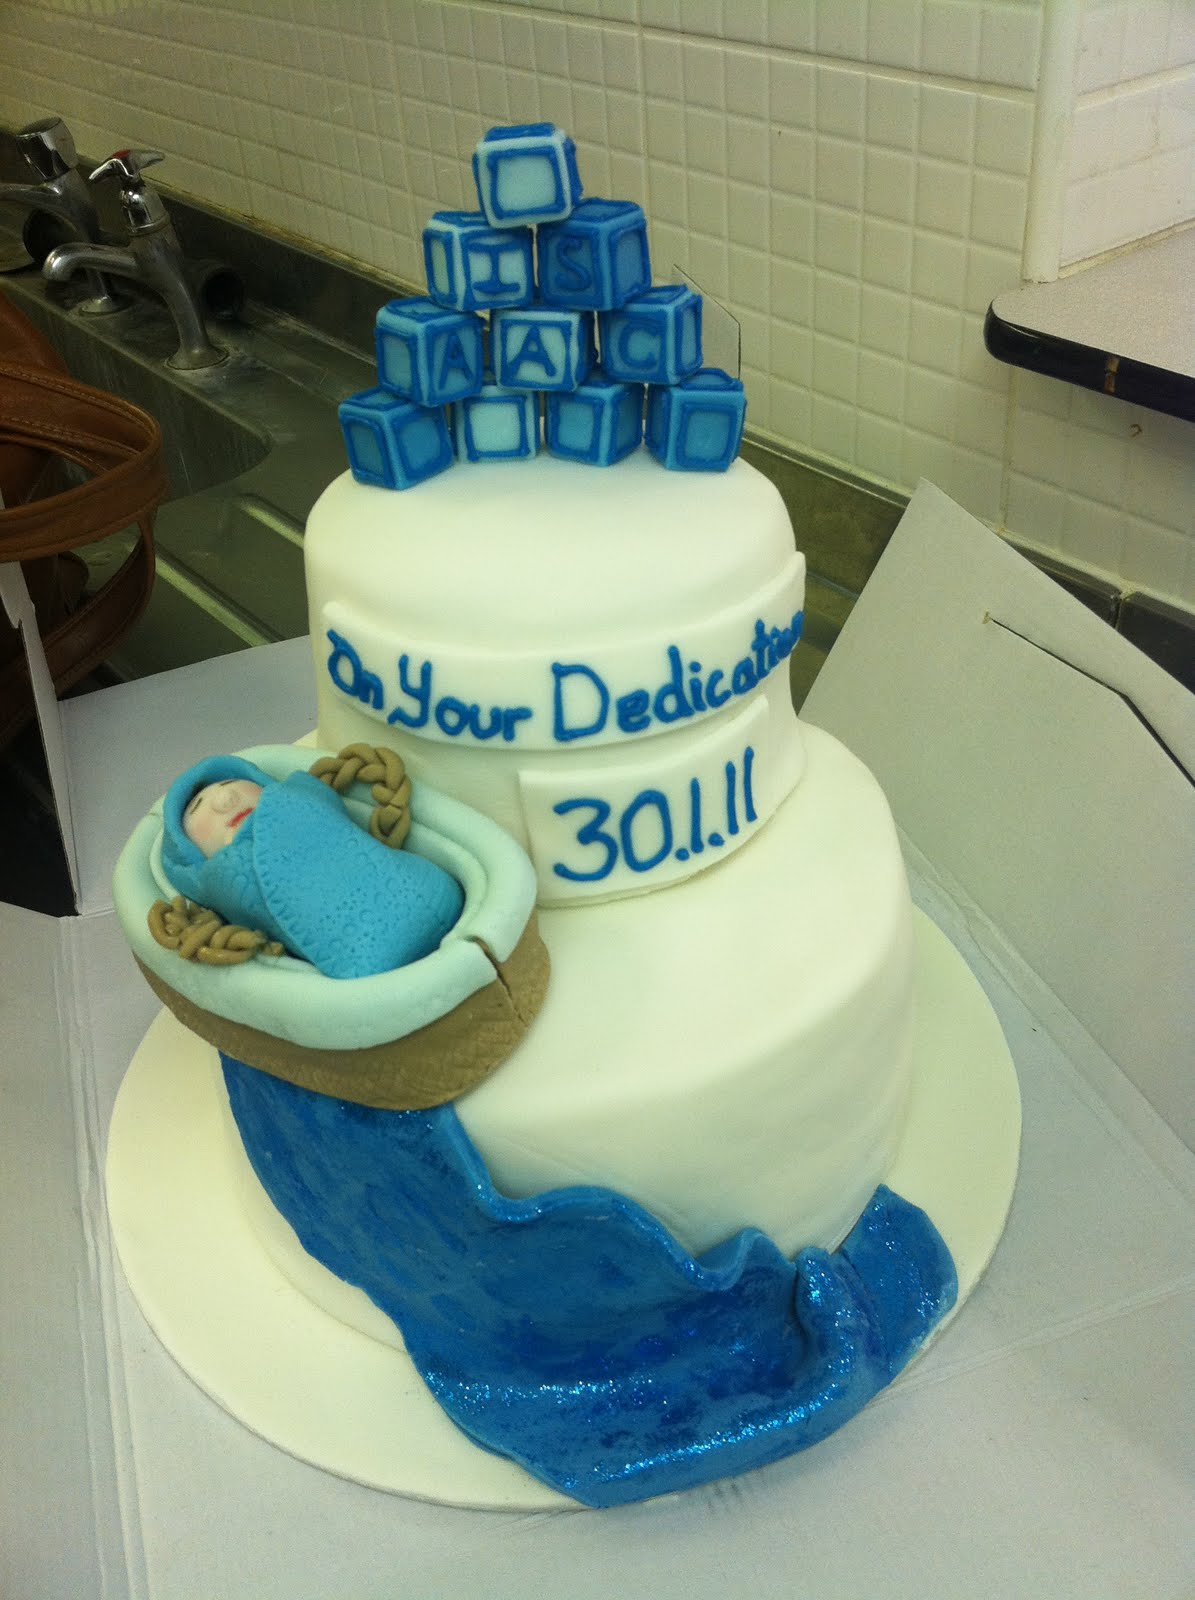 Cake Designs For Baby Dedication : Dedication A Baby Cake Ideas and Designs